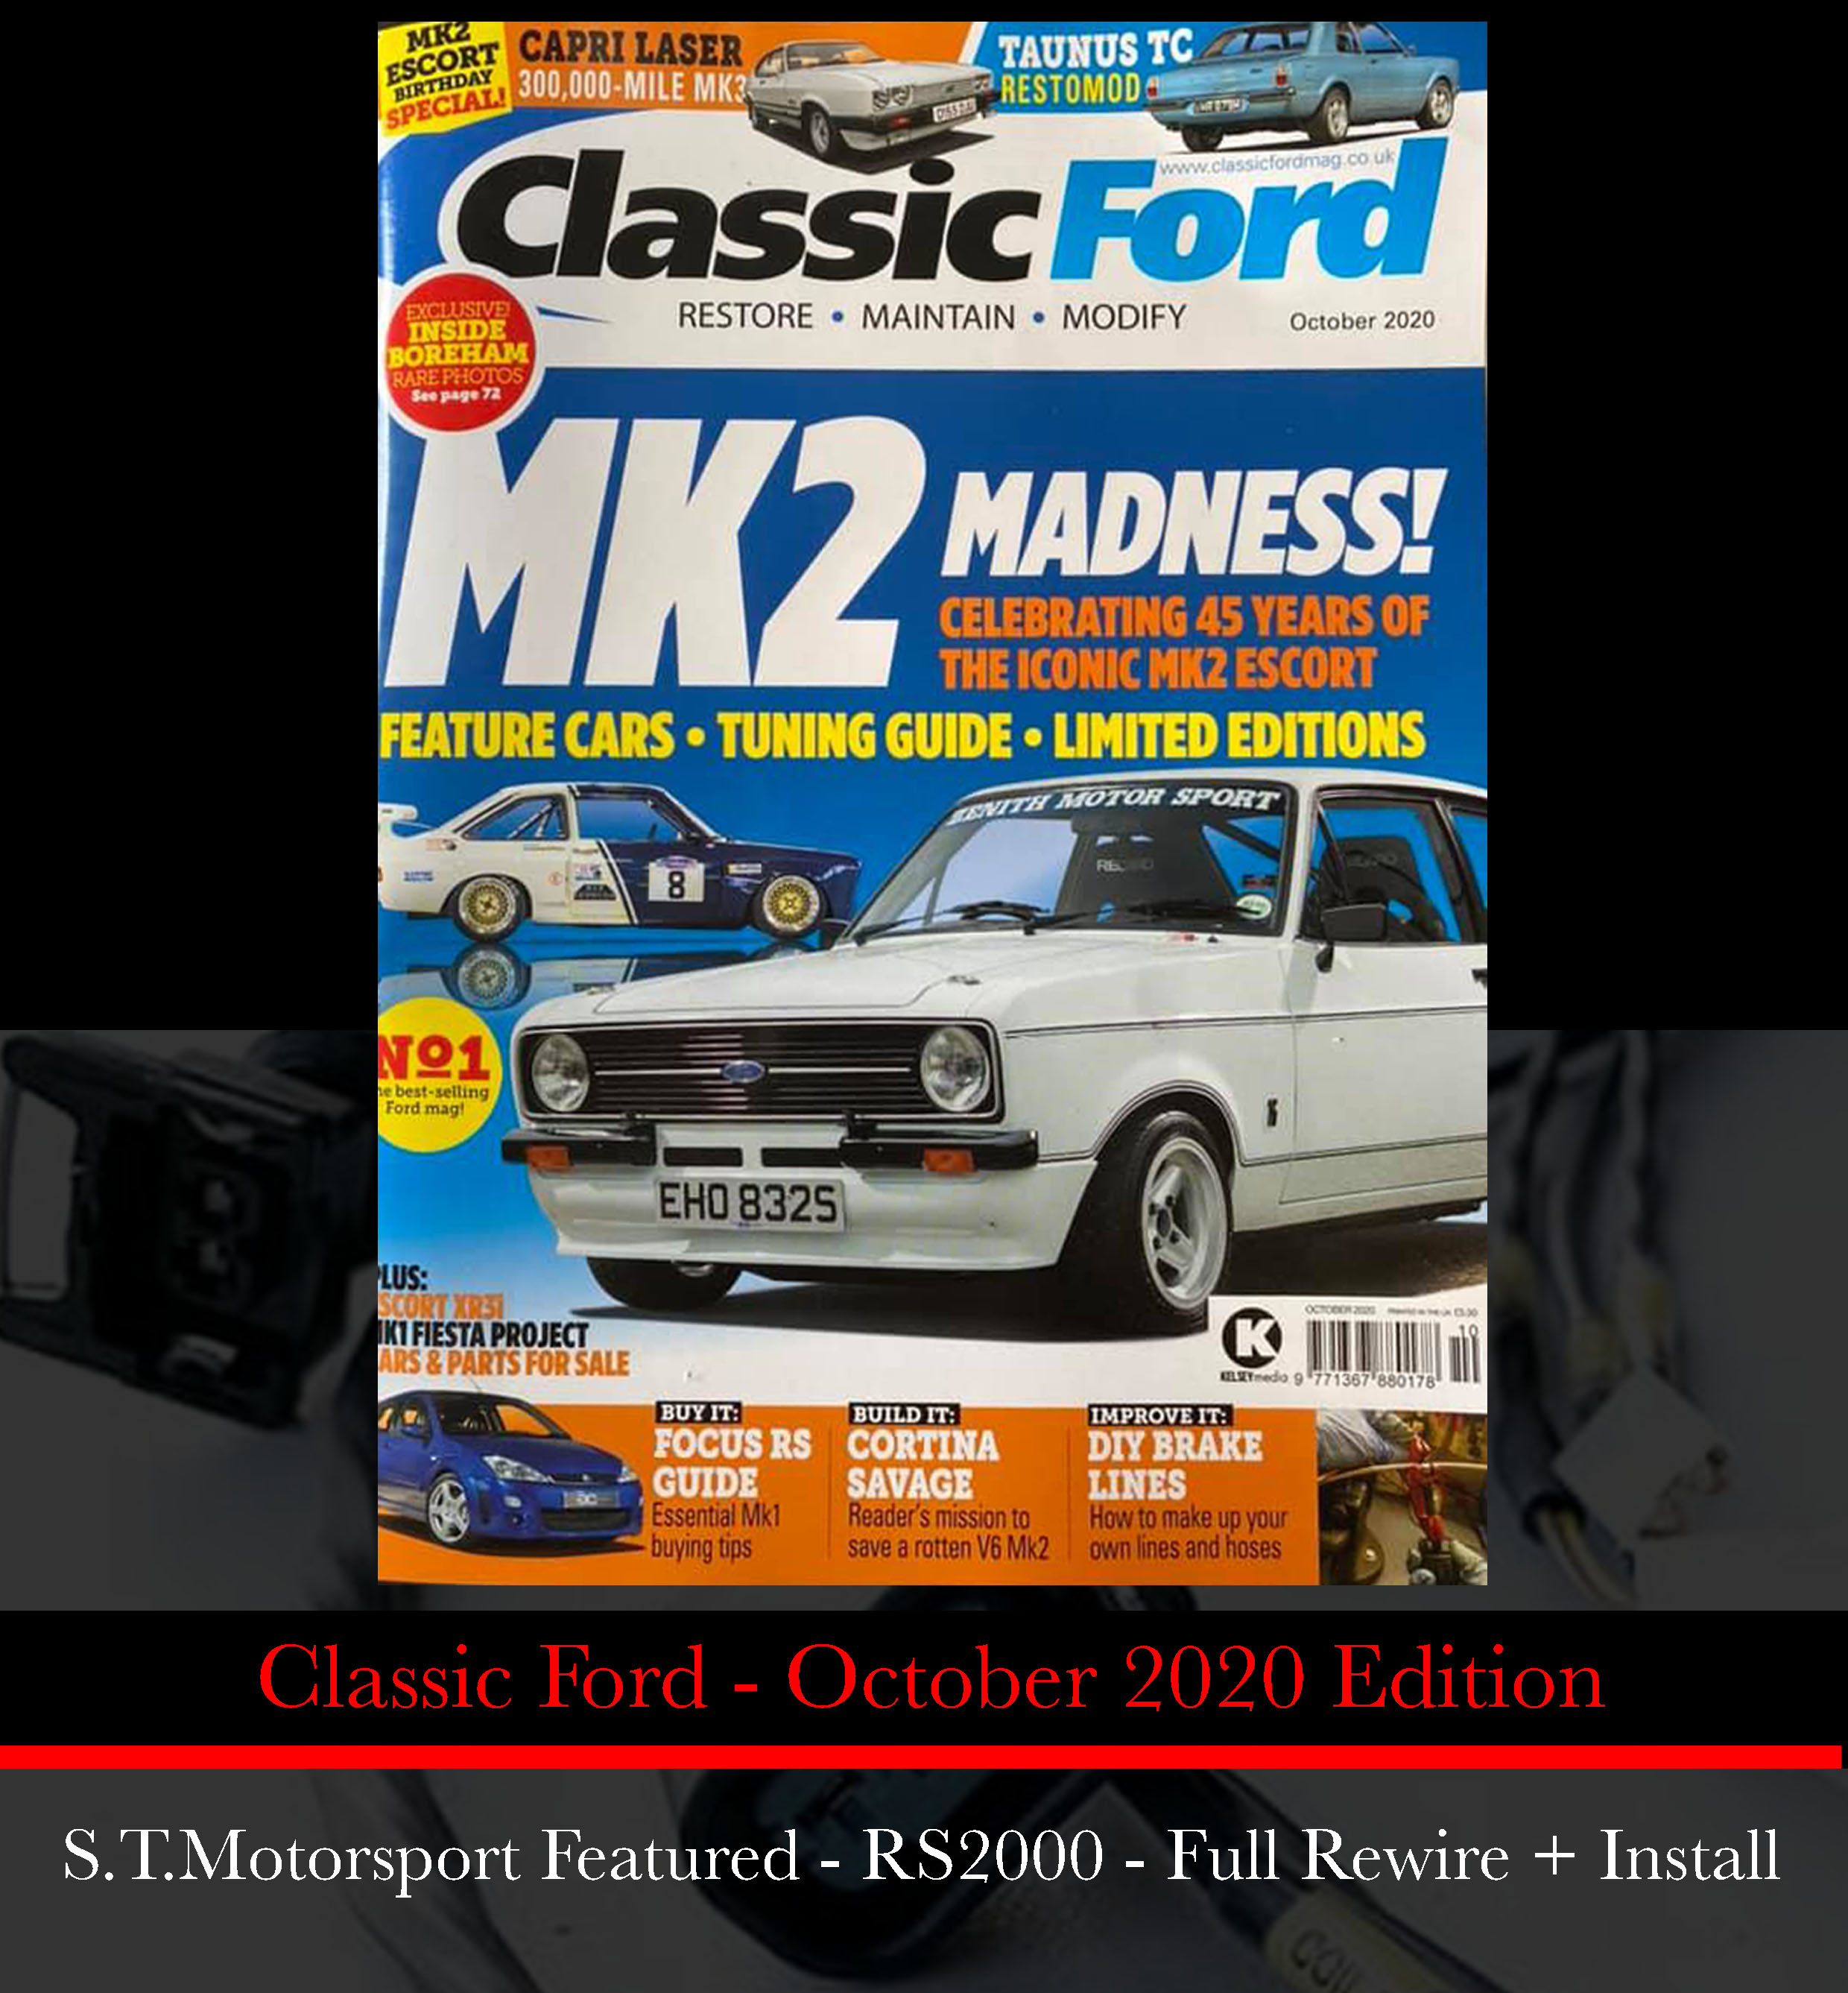 Classic Ford - October 2020 Edition